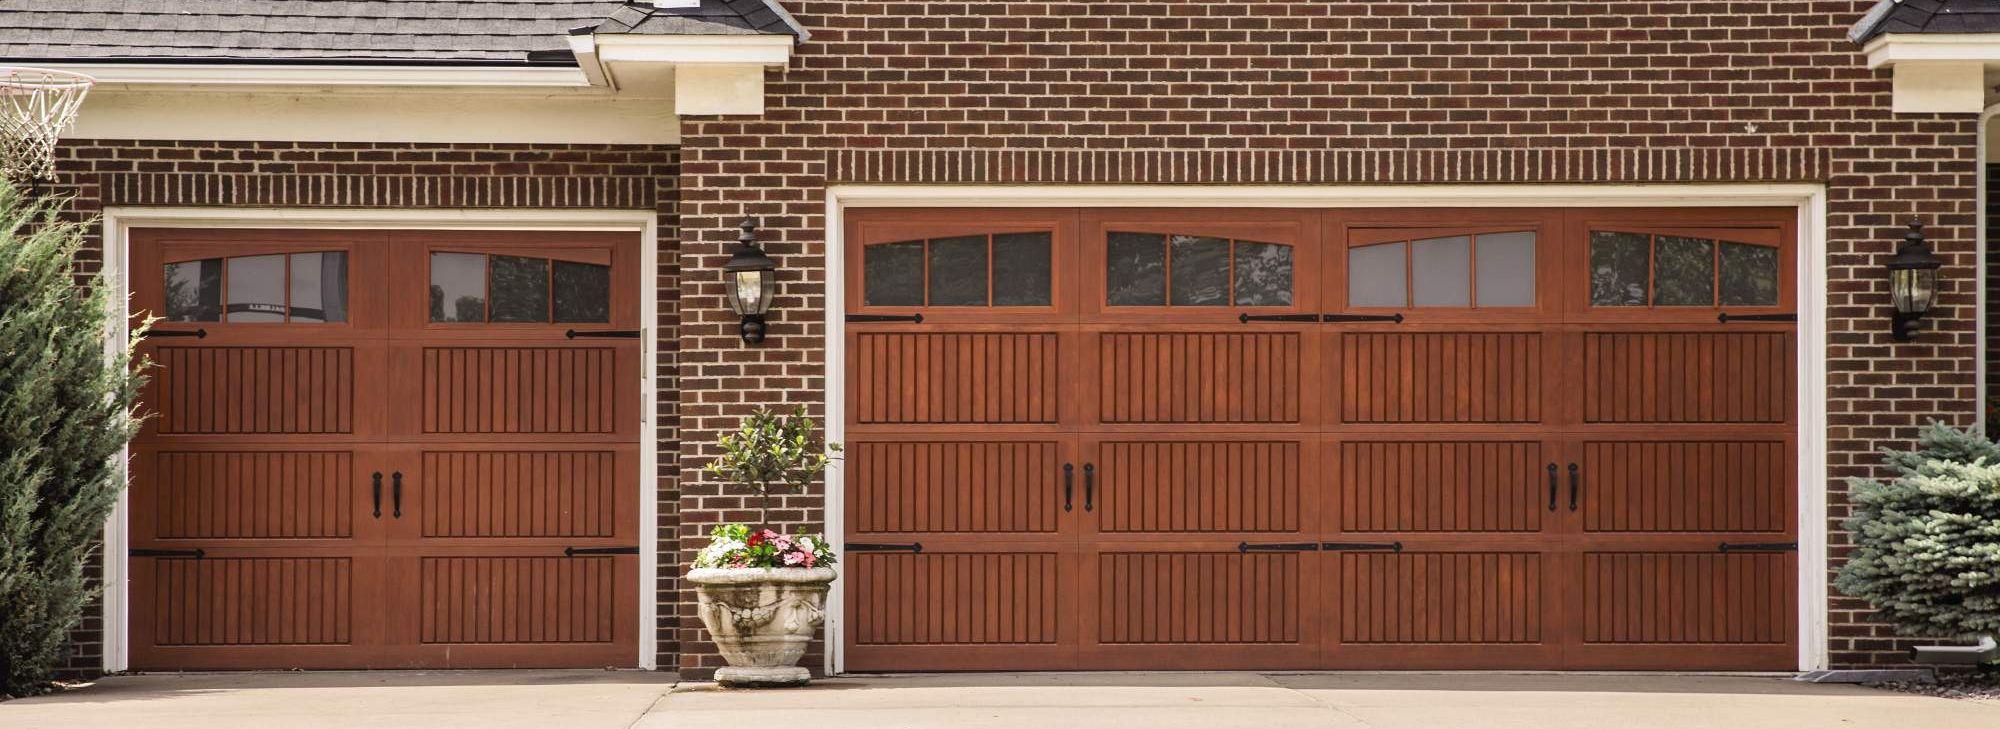 Impression Collection Garage Doors Overhead Door Company Of Knoxville